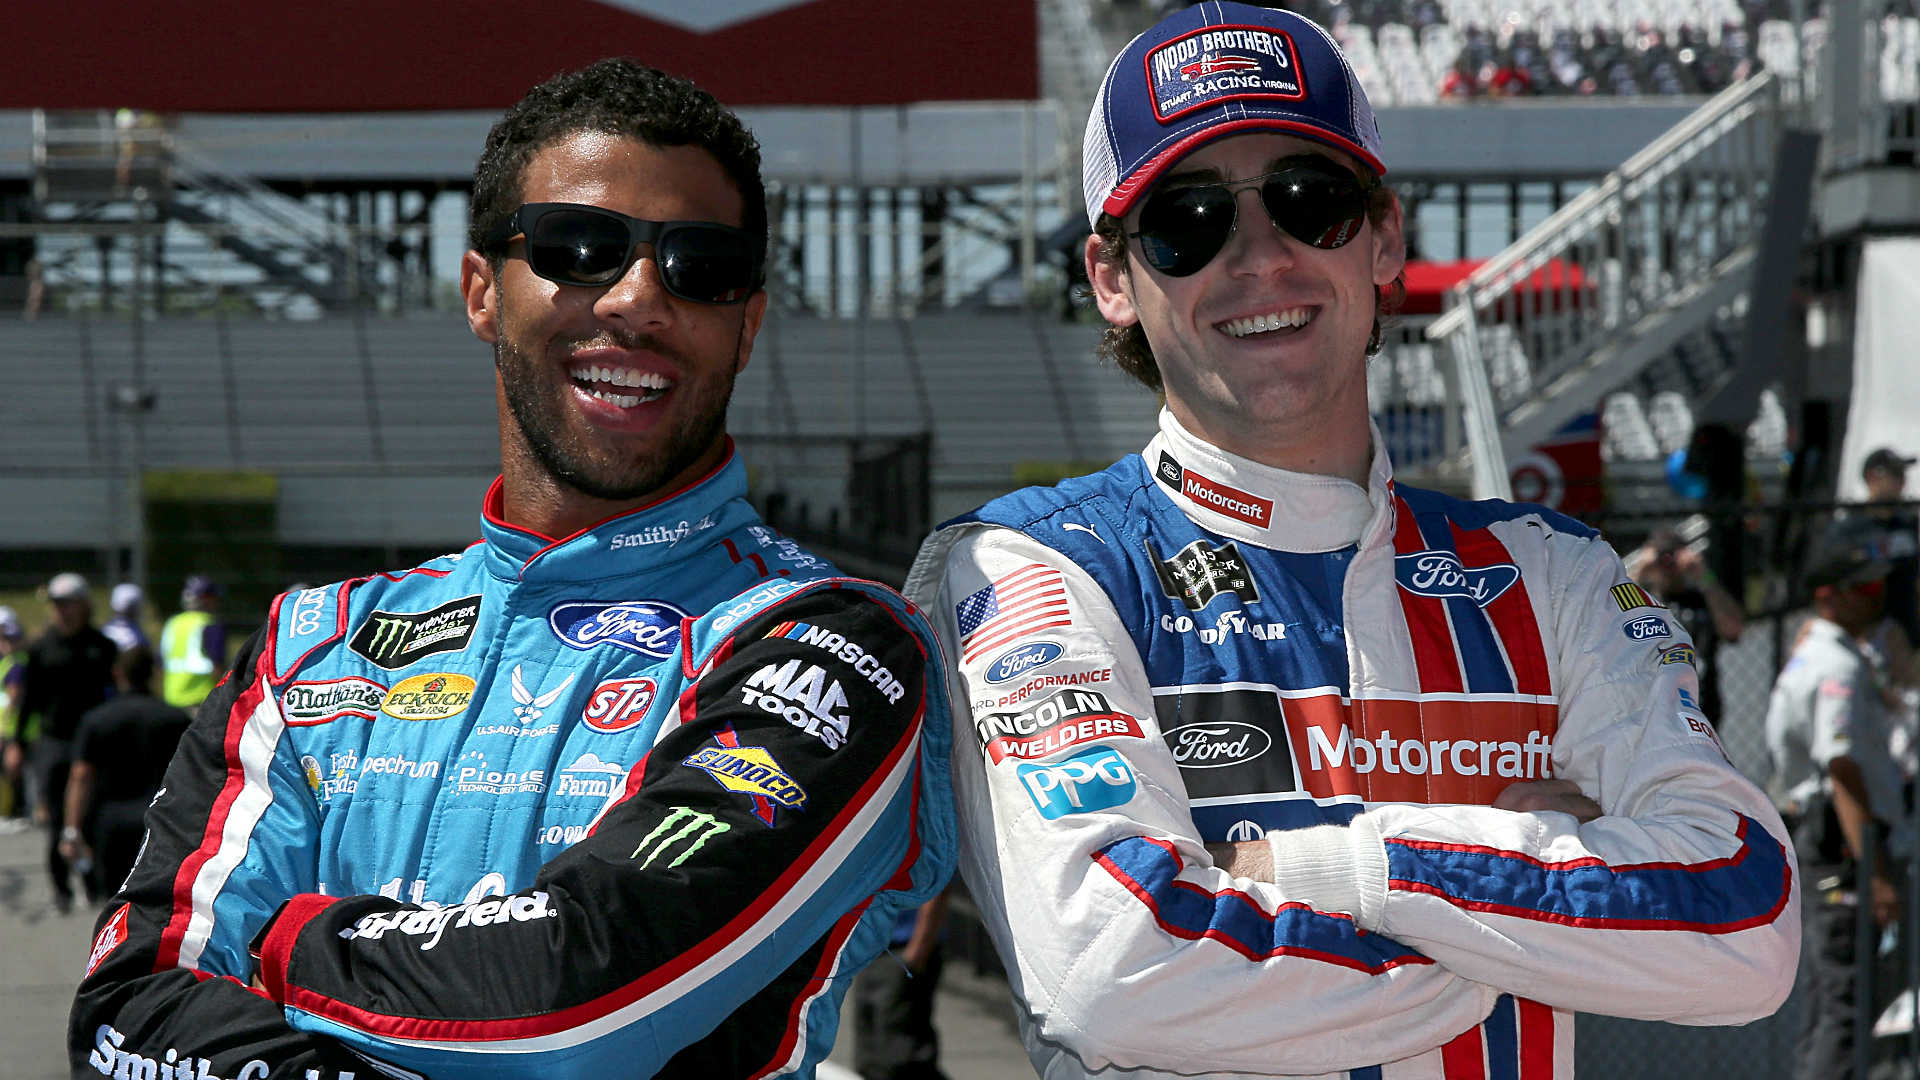 Daytona 500: Best friends Ryan Blaney, Bubba Wallace proving to be contenders